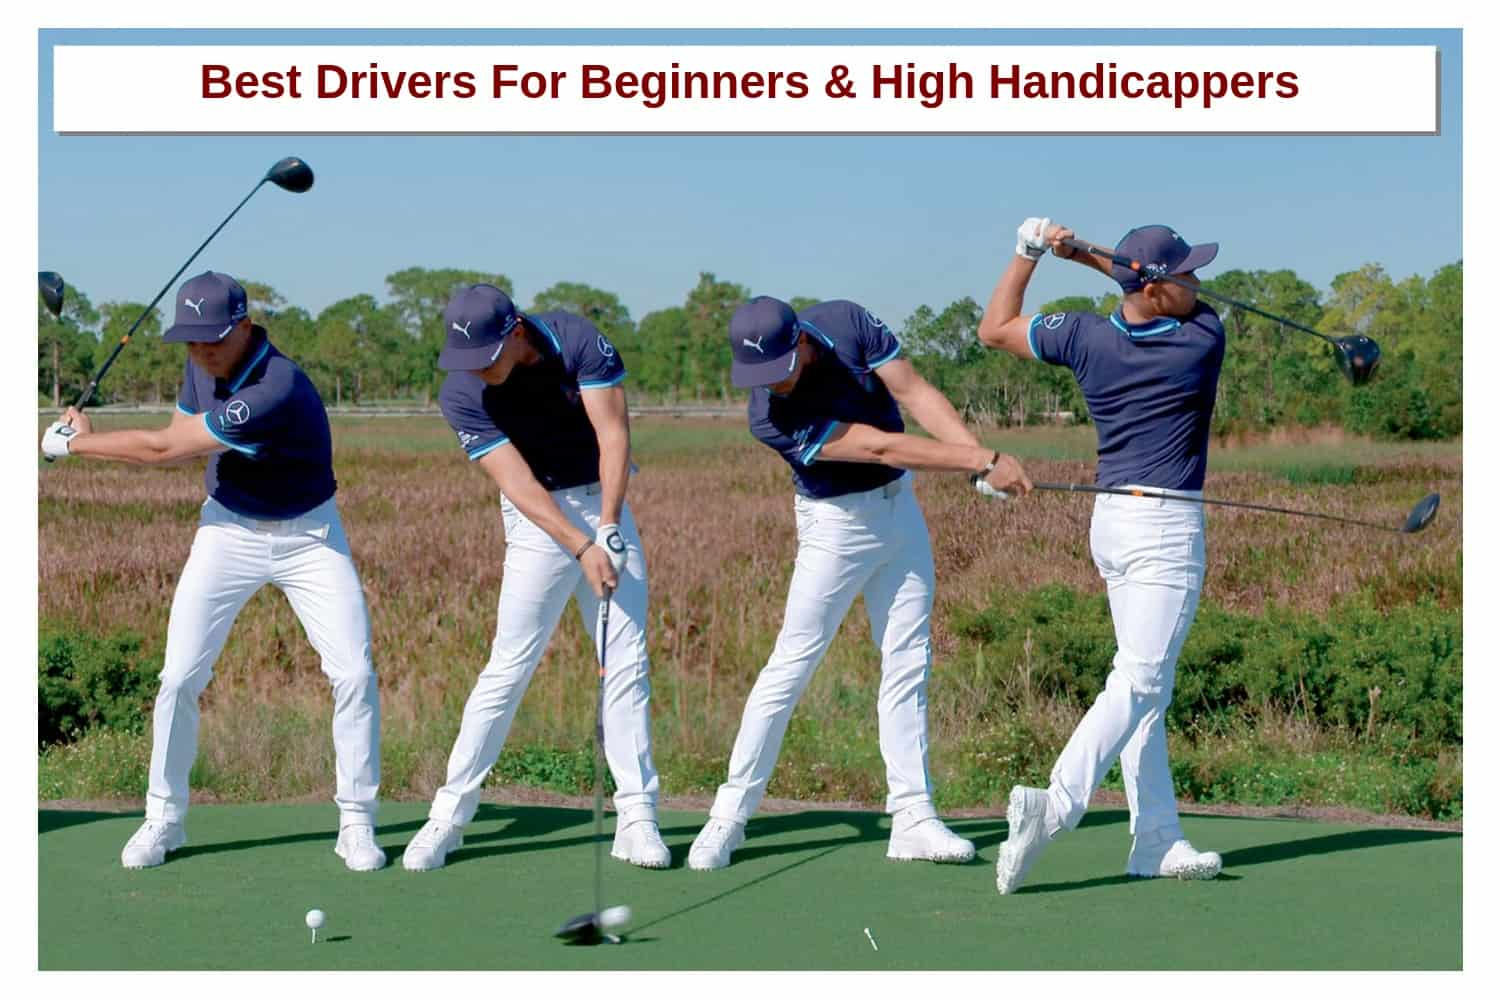 Best Driver for beginners and high handicappers review